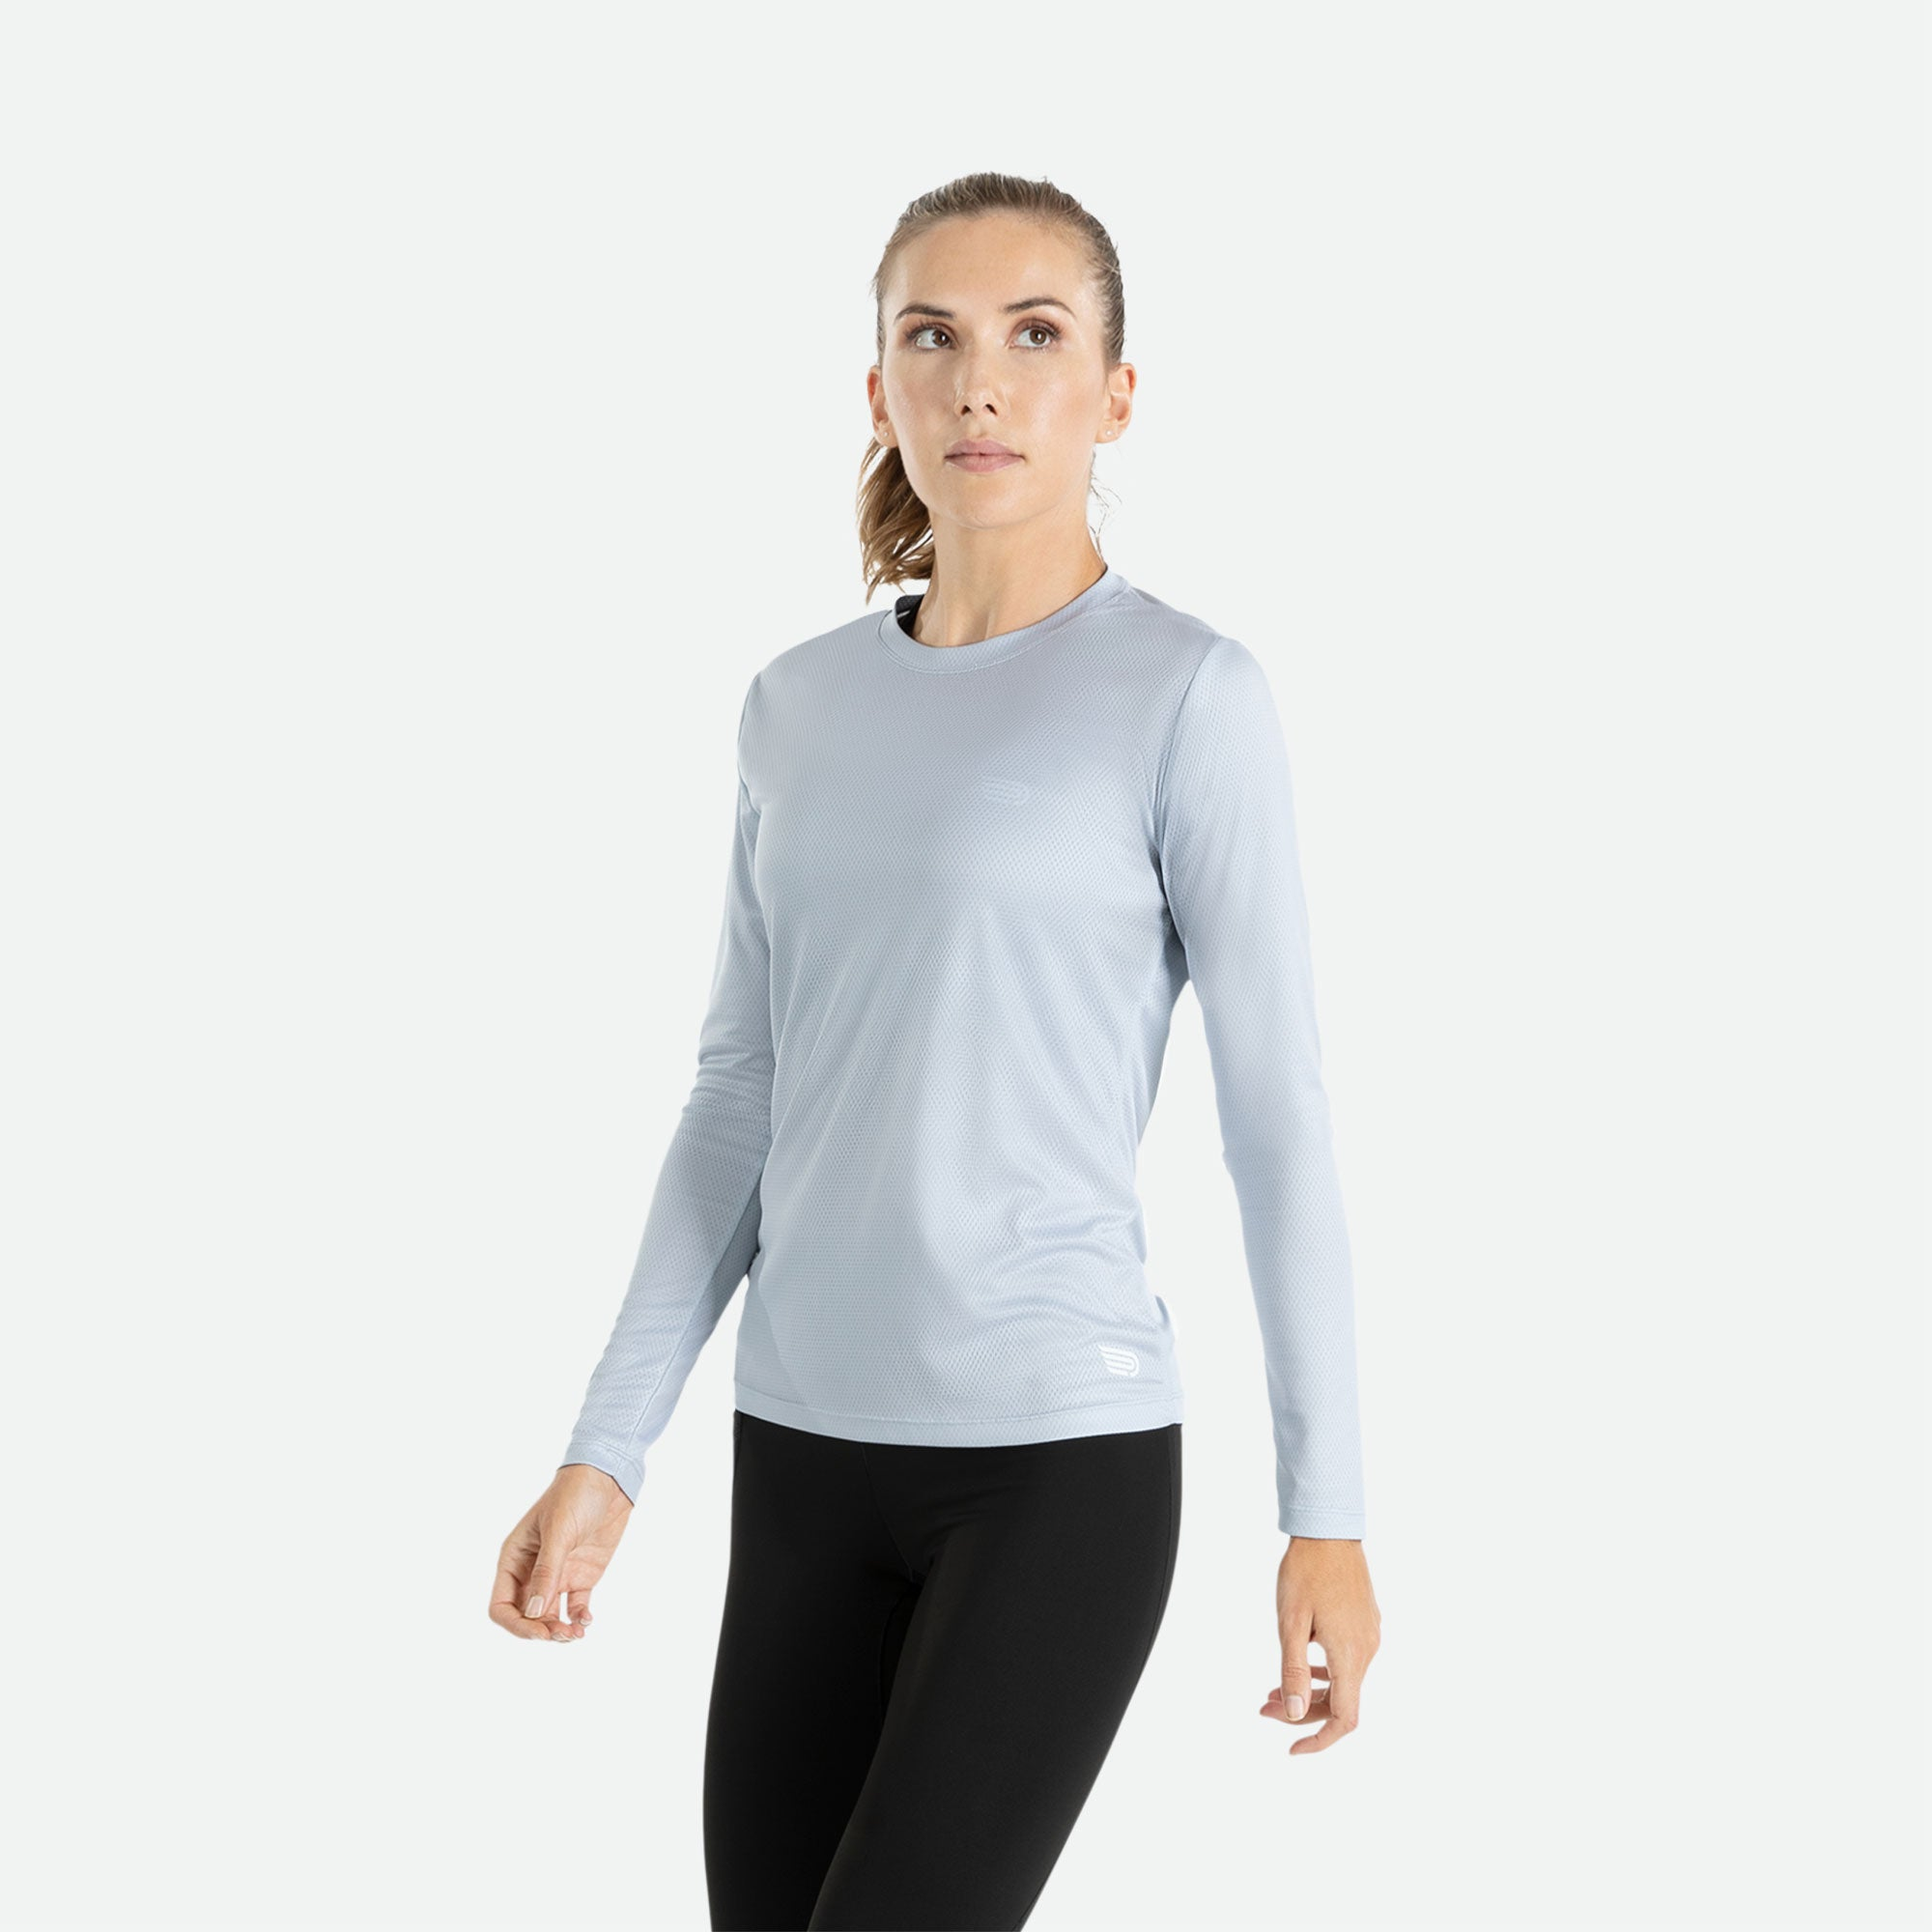 Our Pressio women's light grey Hāpai long sleeve t-shirt features EcoTECH MF fabric which has dual filament recycled polyester yarns from Unifi for superior moisture control to keep you dry.